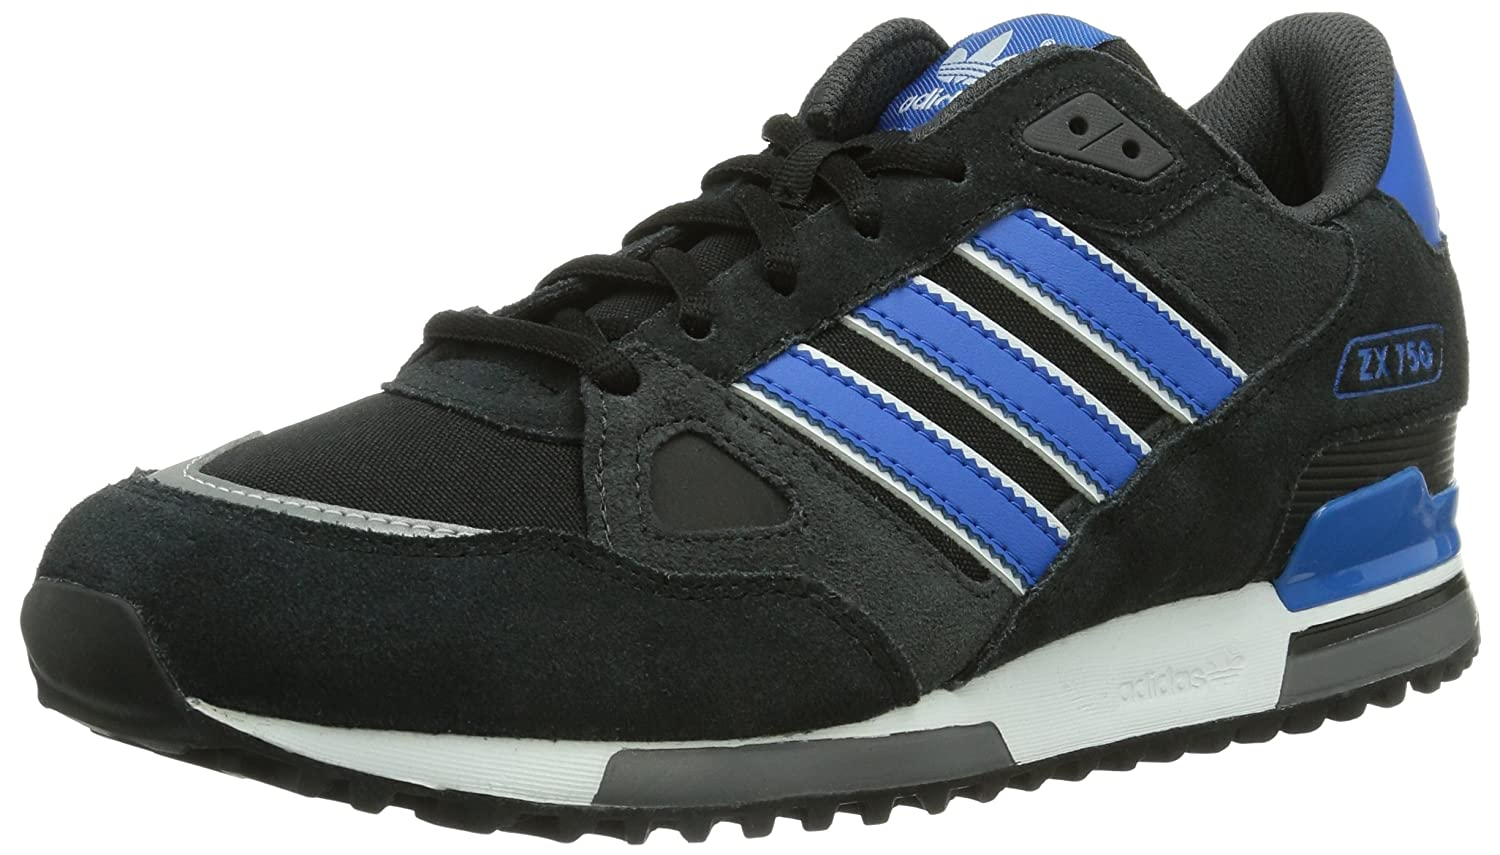 20ec71cc2 ... Sneaker Freaker Adidas ZX Mens Trainers Amazon.co.uk Shoes Bags Adidas  ZX 750 ...